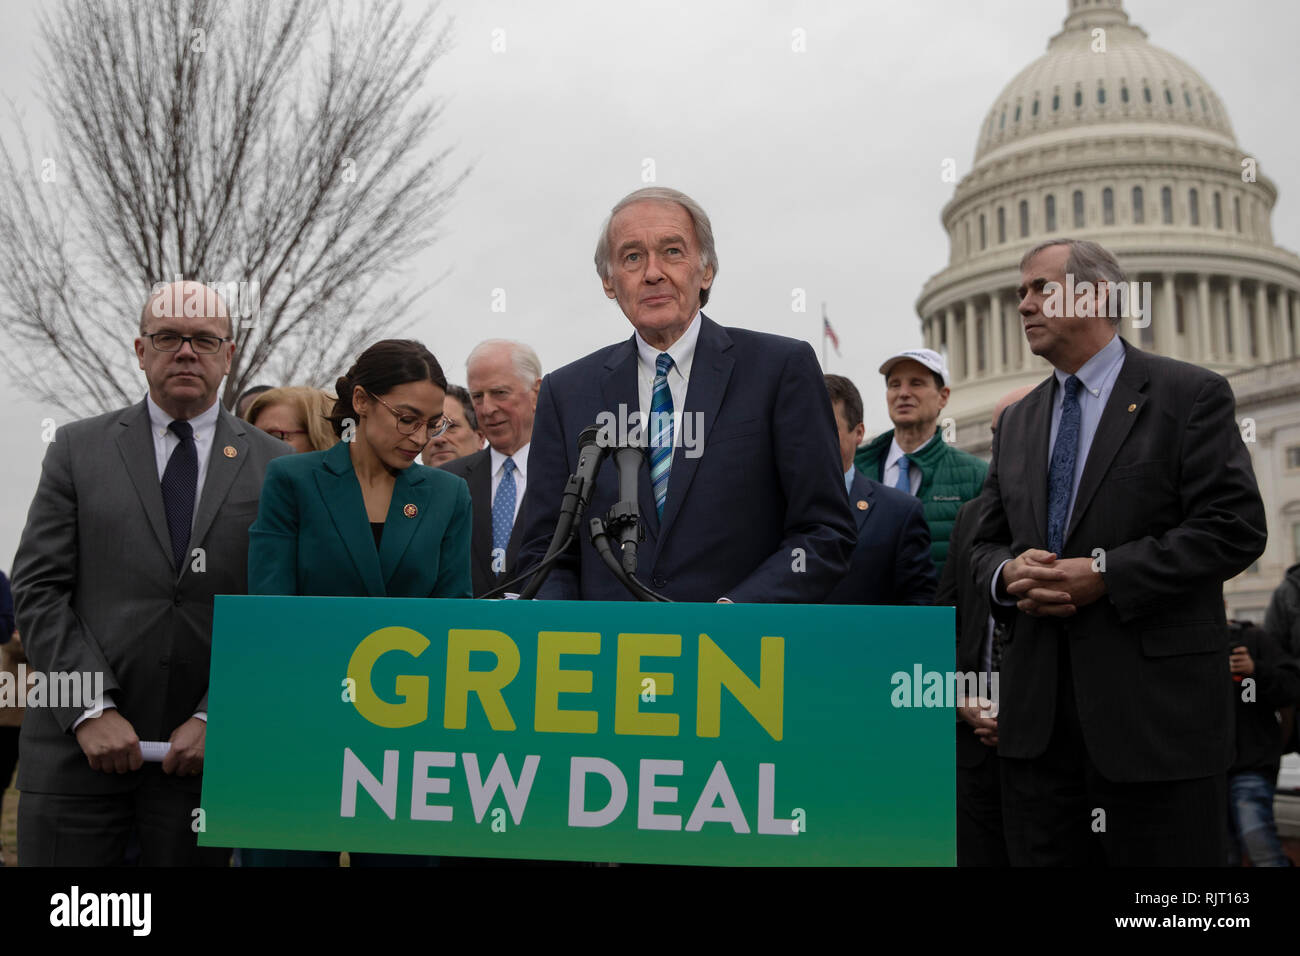 """Senator Ed Markey, Democrat of Massachusetts, speaks during a press conference to announce the """"Green New Deal"""" held at the United States Capitol in Washington, DC on February 7, 2019. Credit: Alex Edelman/CNP   usage worldwide Stock Photo"""